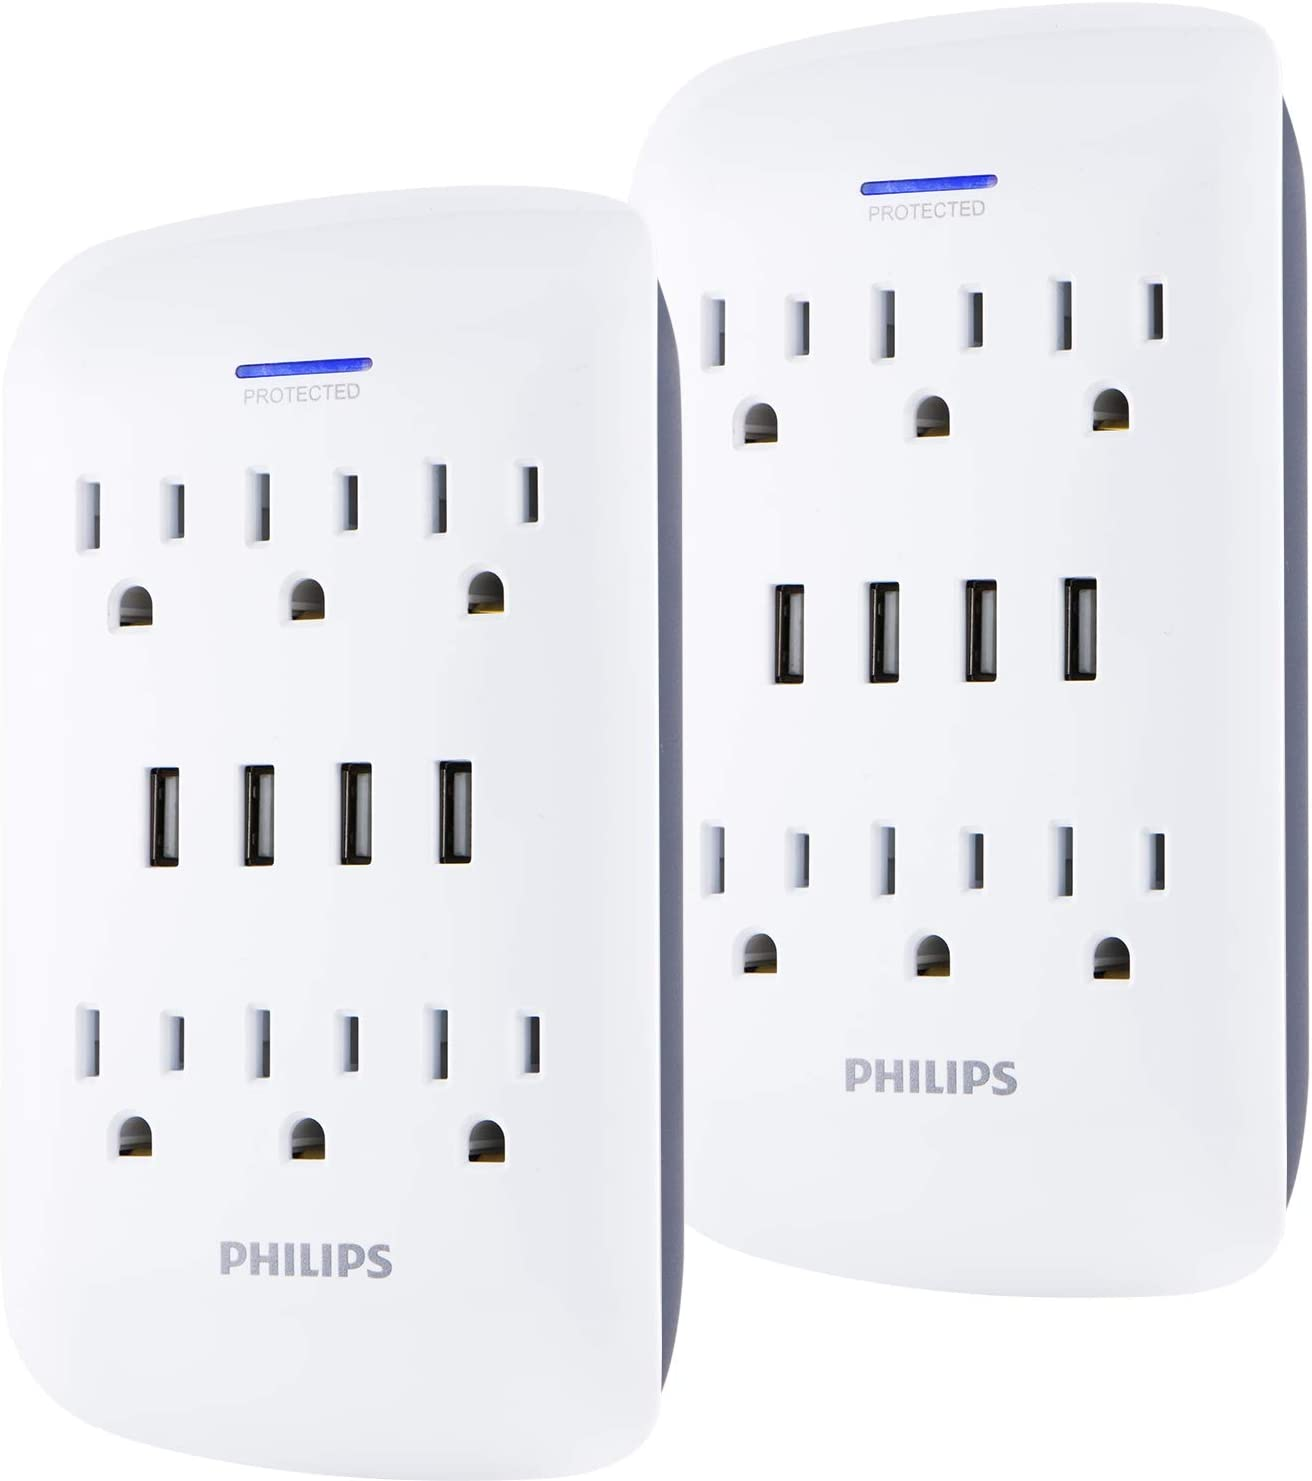 PHILIPS 6-Outlet Surge Protector Wall Tap with 4 USB Ports, 2 Pack, Charging Station, Power Adapter, 900 Joules, Extender, White, SPP6469WG/37